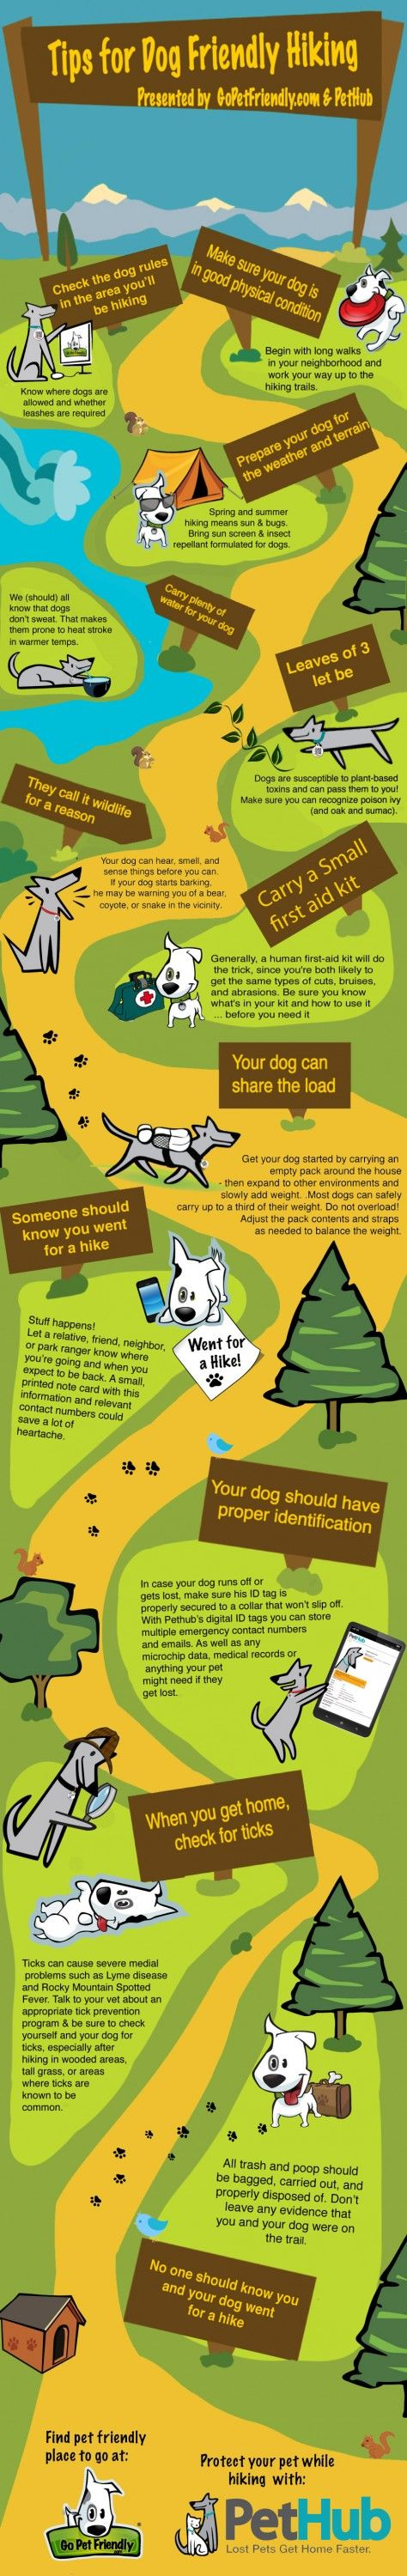 To make sure your dog's next hiking adventure doesn't turn into a misadventure,